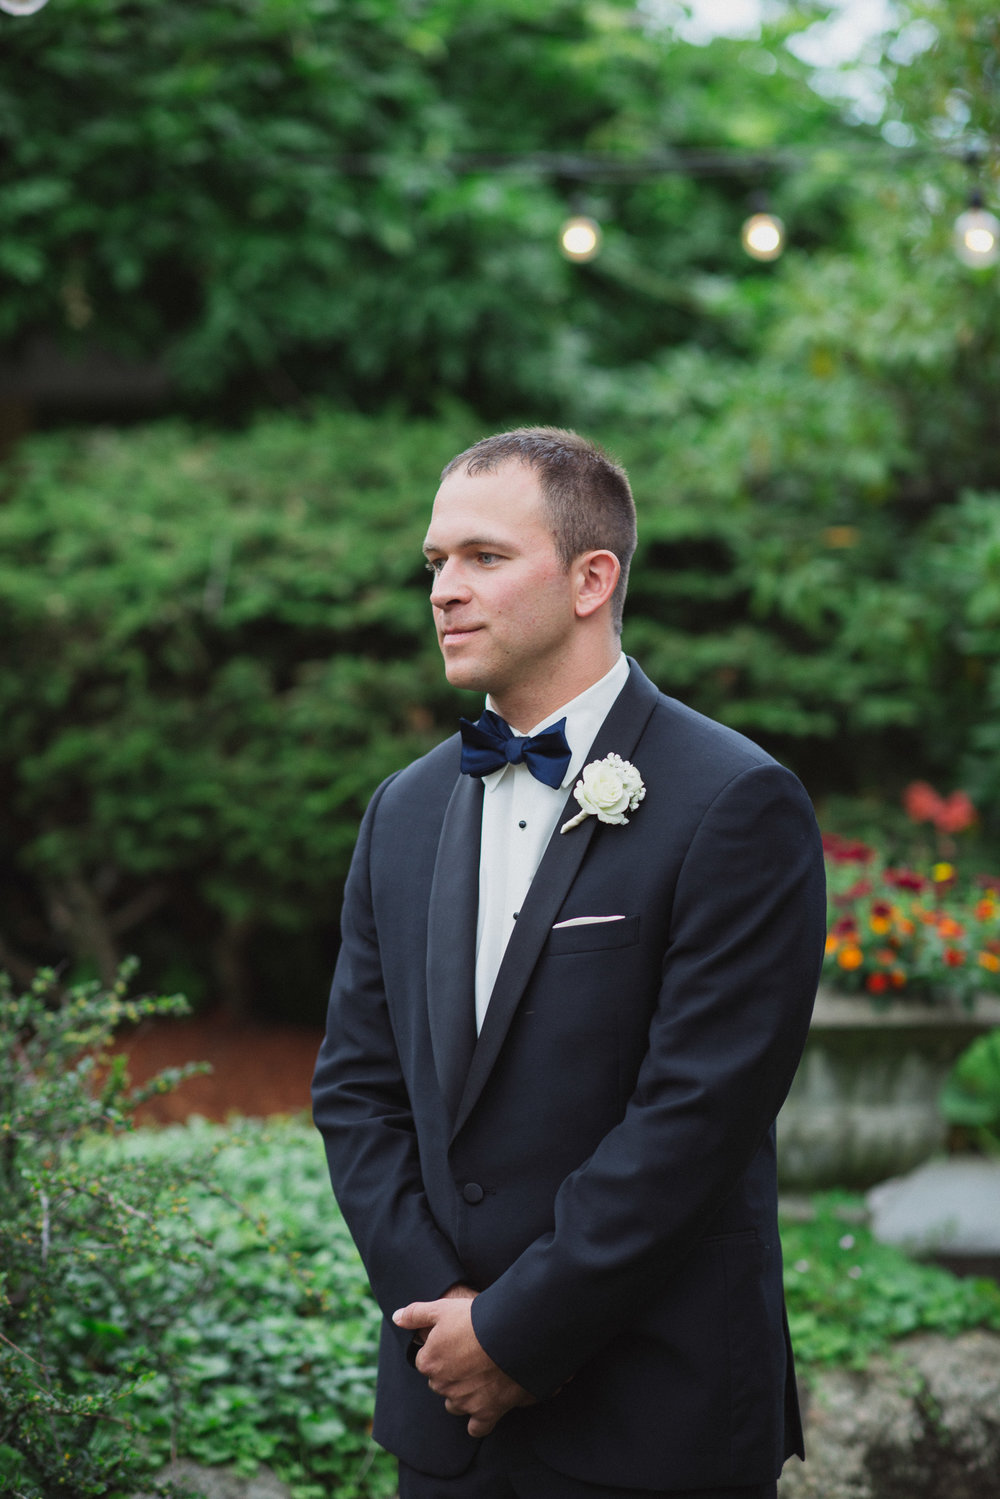 NH Wedding Photography: best man